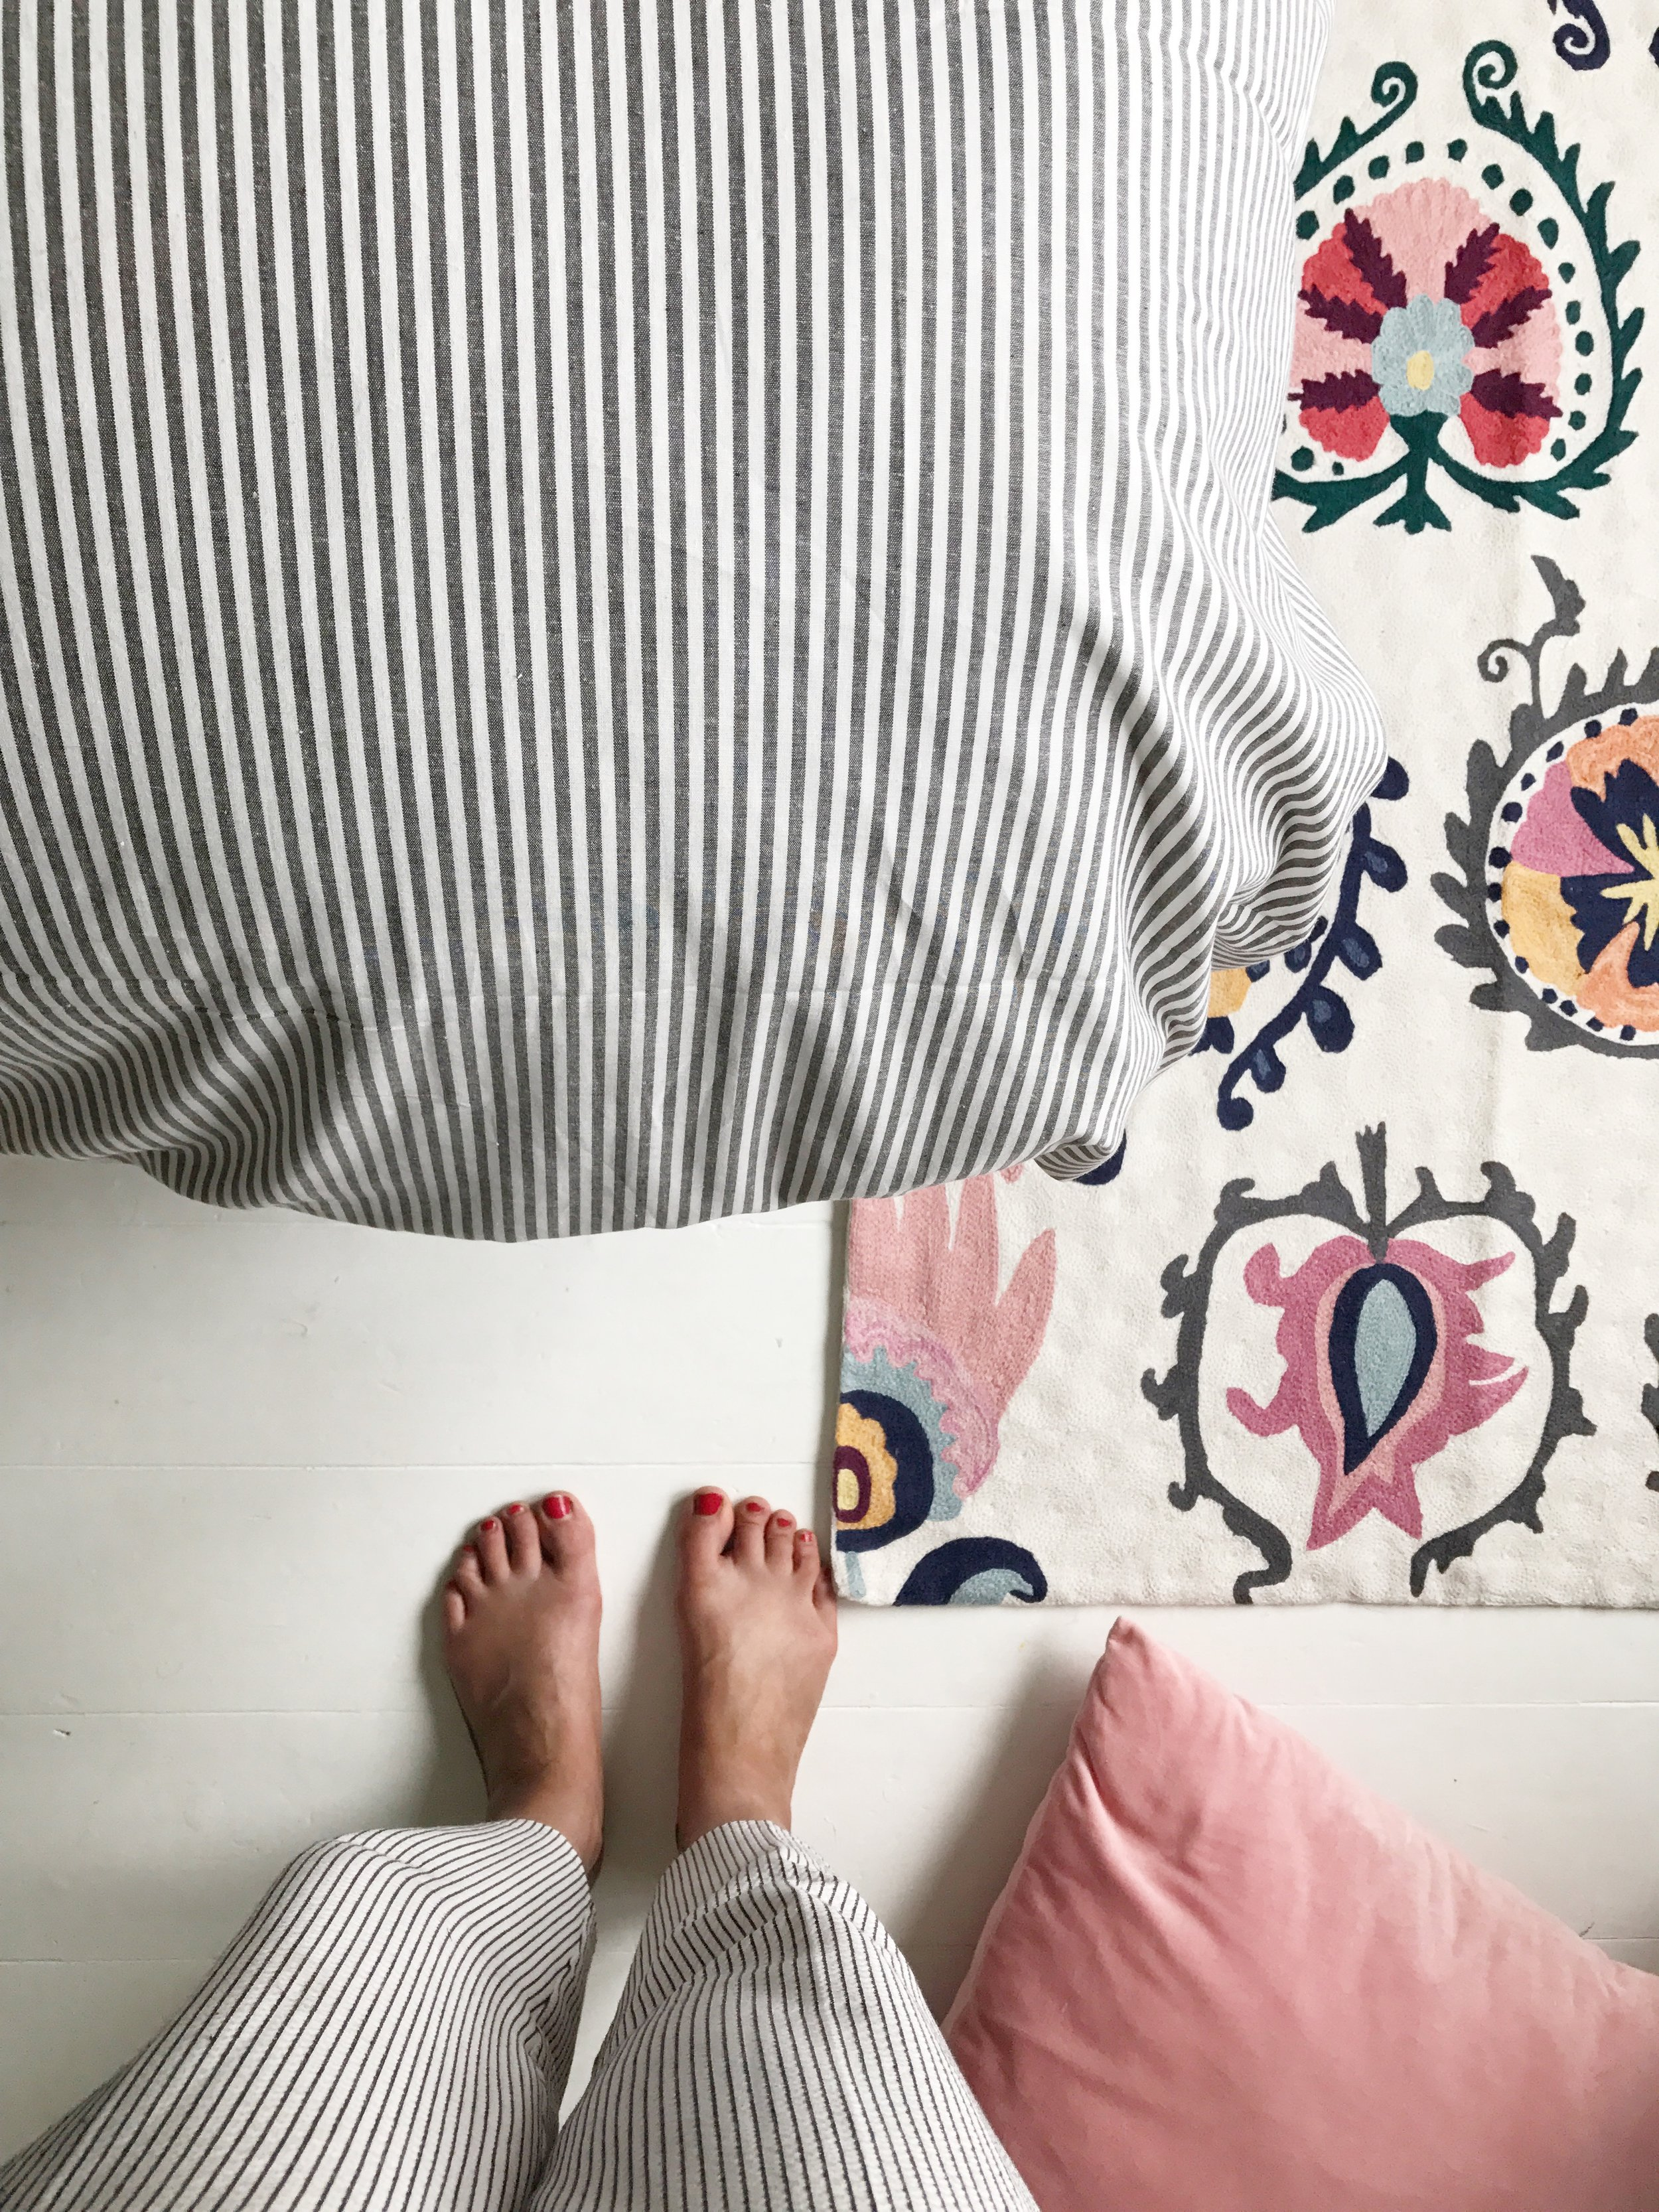 Light grey bedroom decor, adding in pops of zingy yellow and a rug for interest.